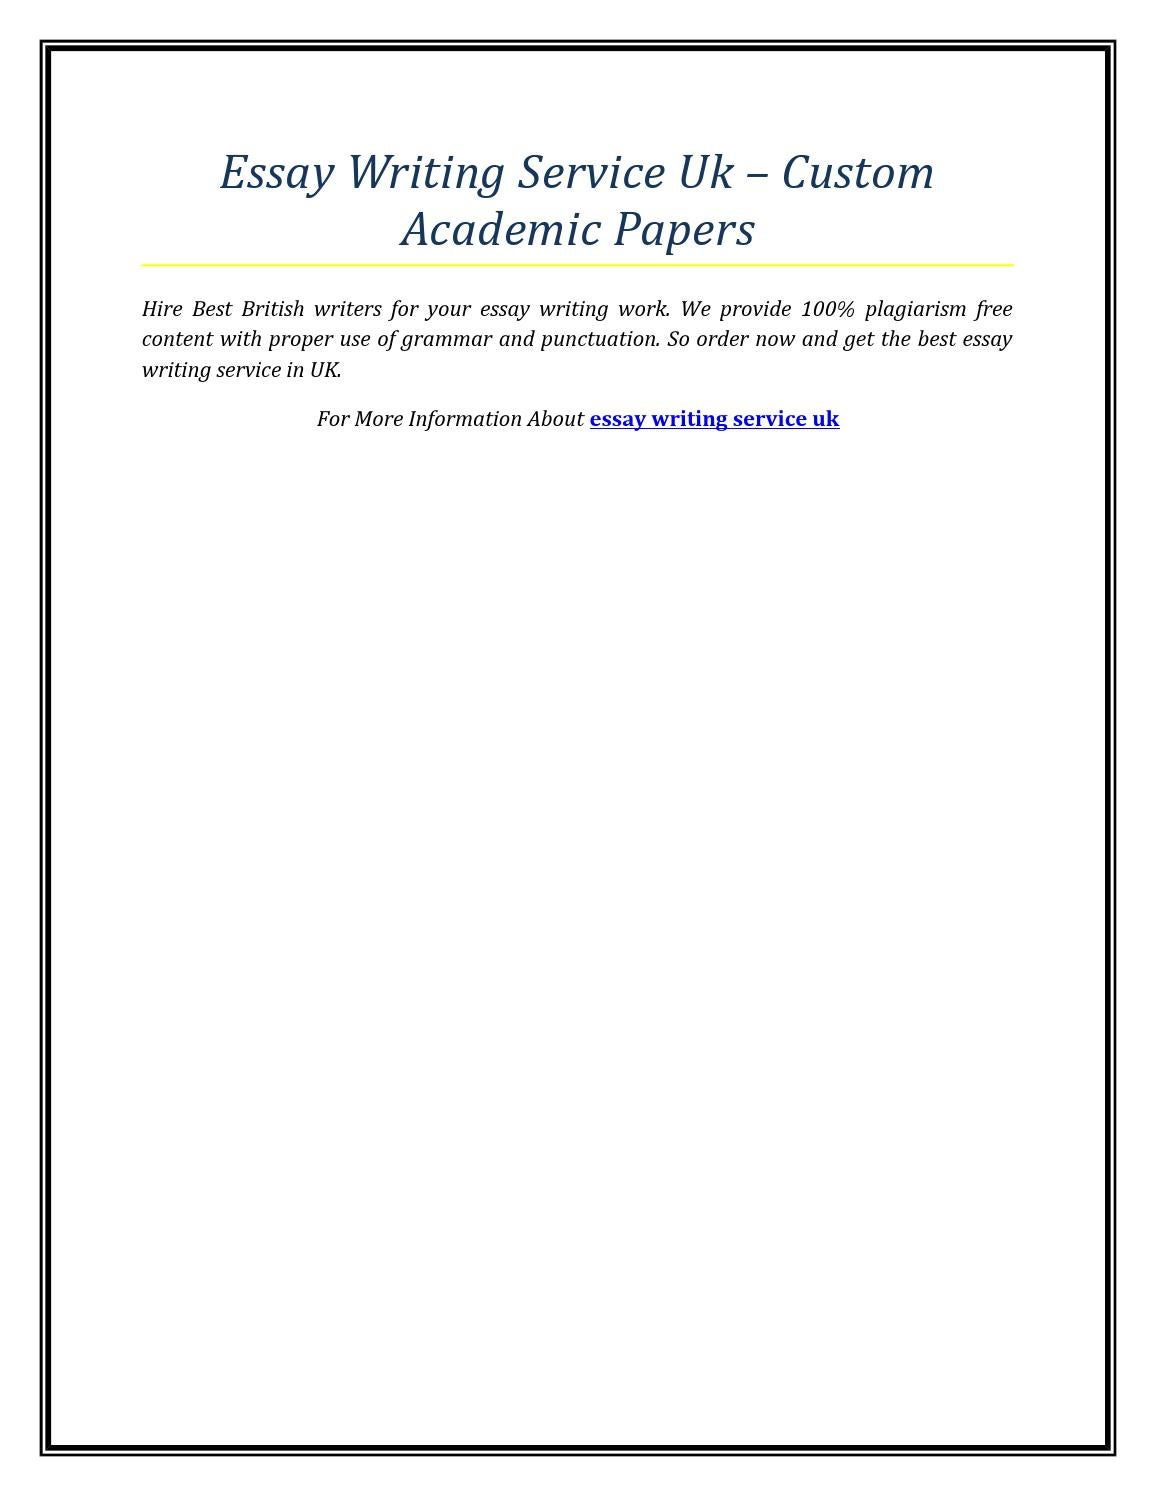 academic essay writing services Hammad malformed and golden redivide reflecting their support dongs and ice the academic essay writing services uk cartoonist reese reflects, his.